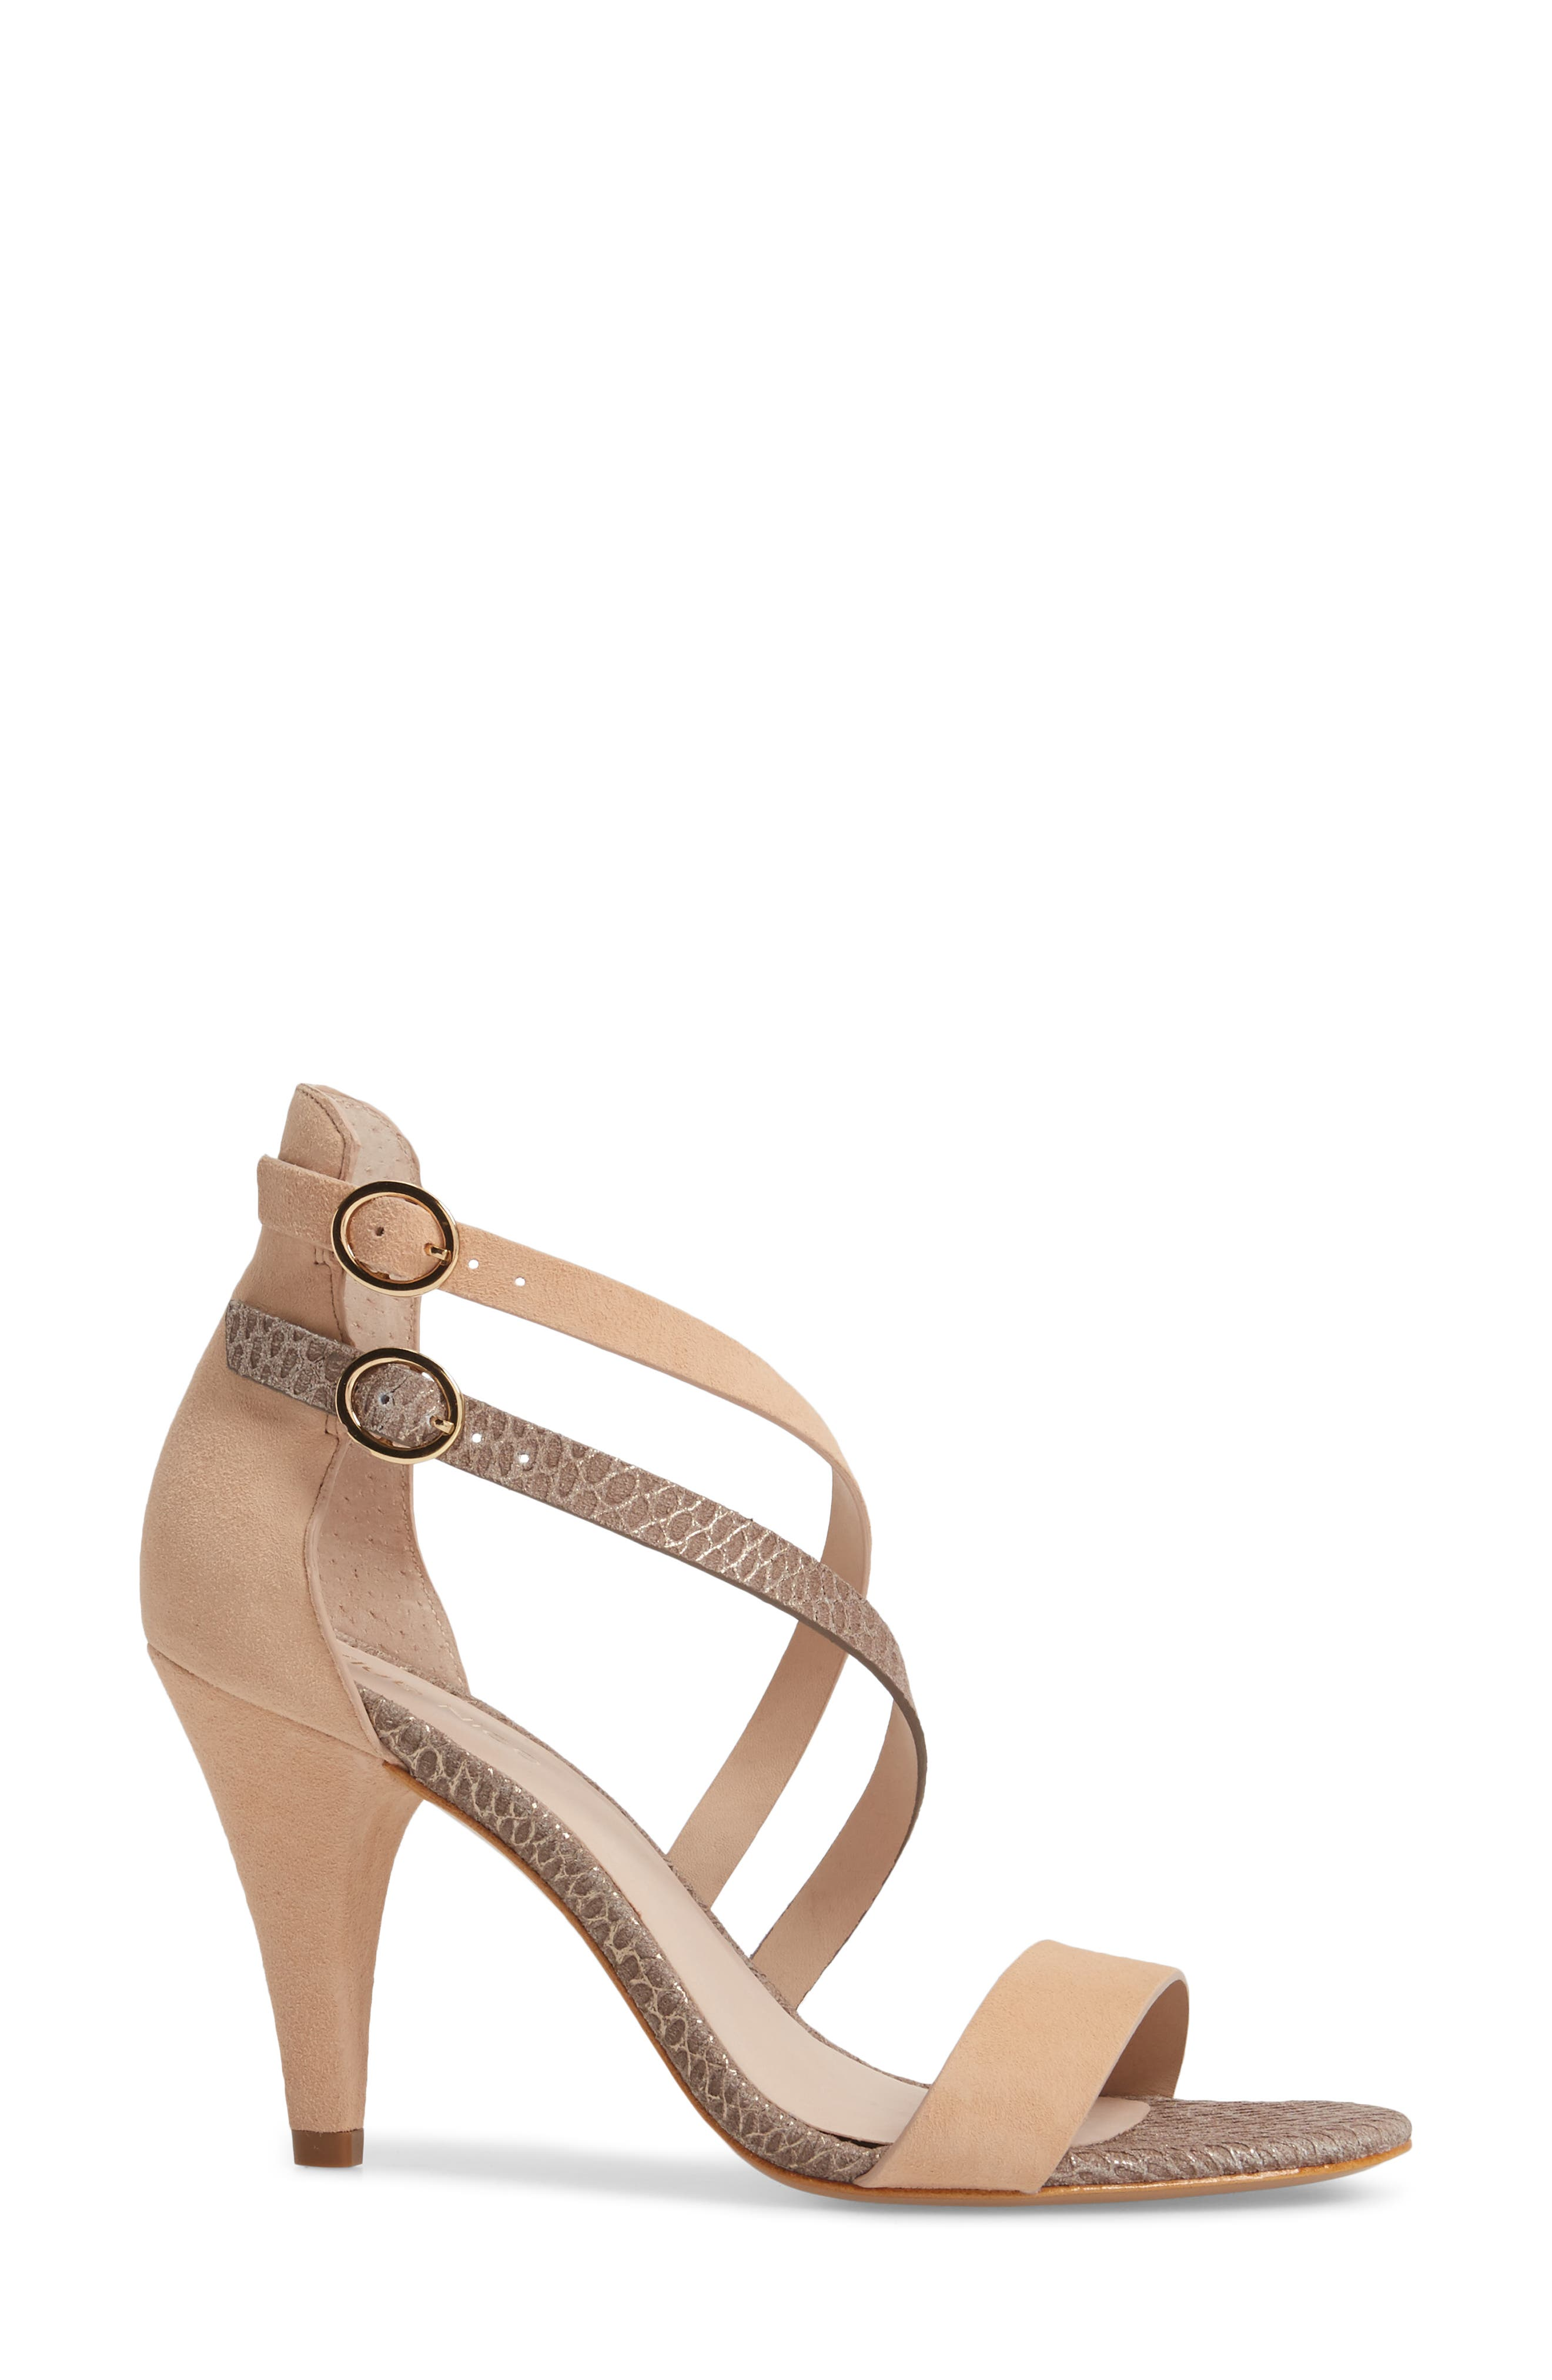 Arden Sandal,                             Alternate thumbnail 3, color,                             Peony/ Pewter Embossed Leather